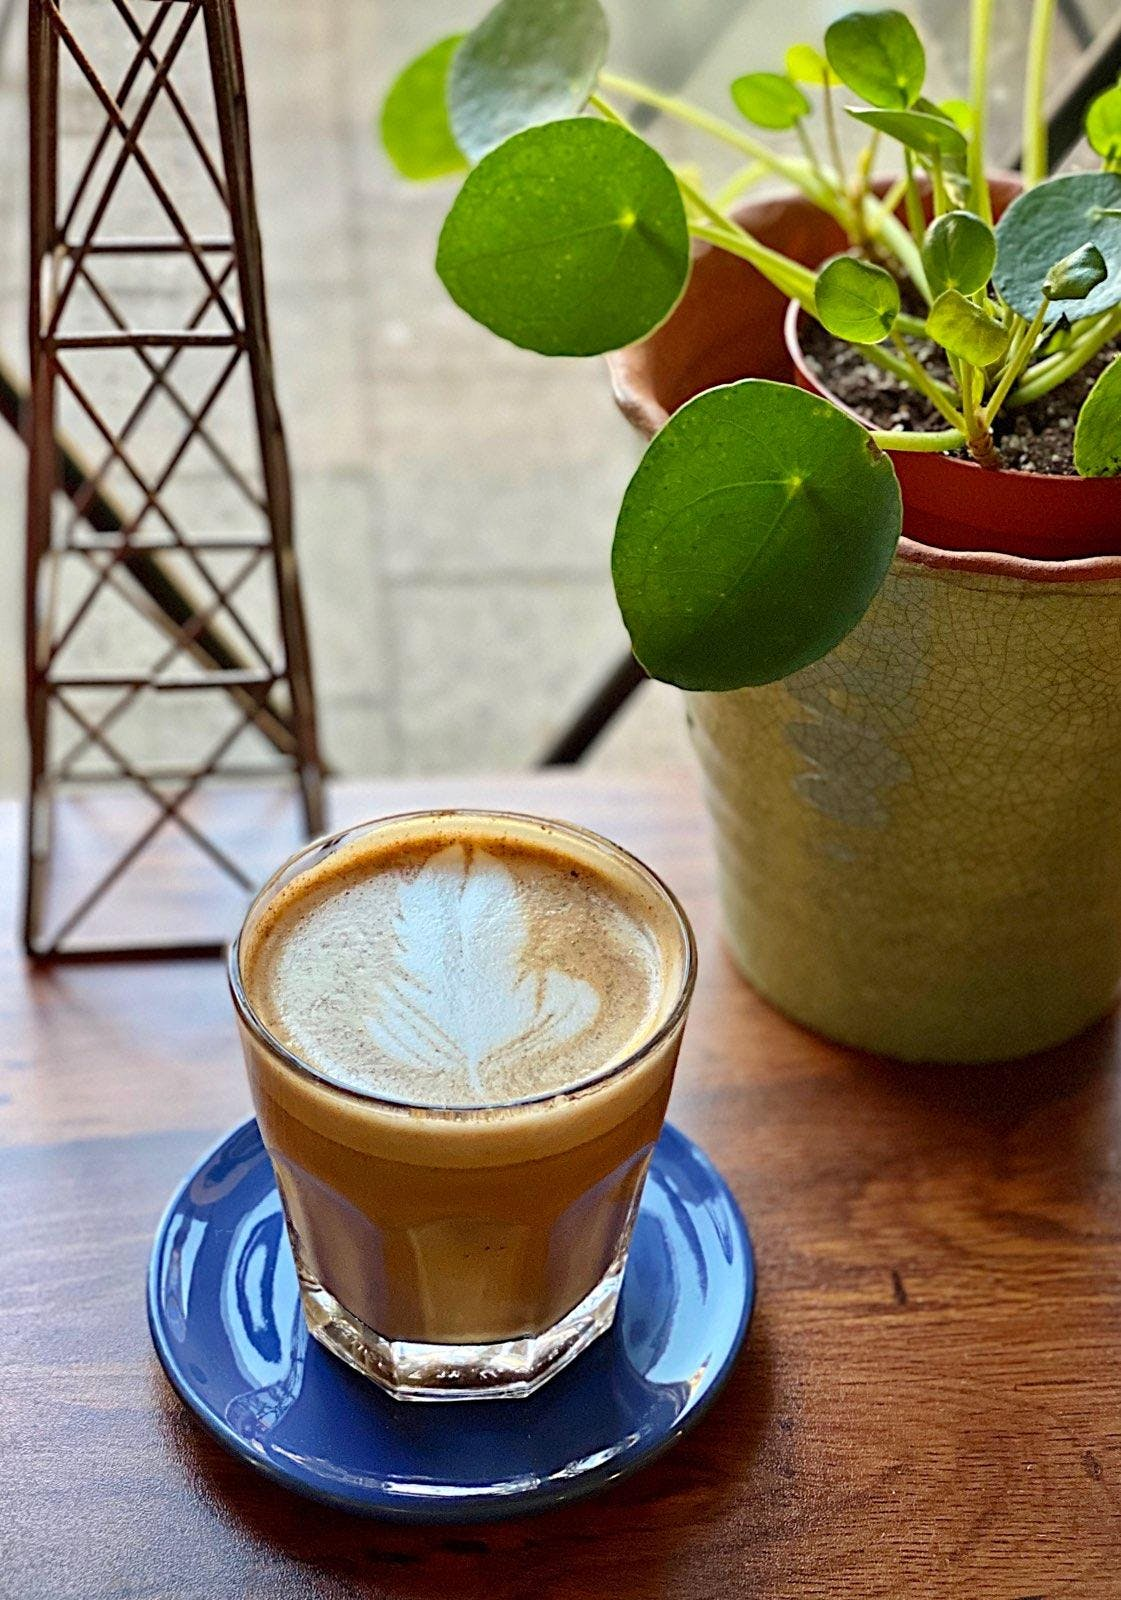 A Cortado sitting on a table next to the window